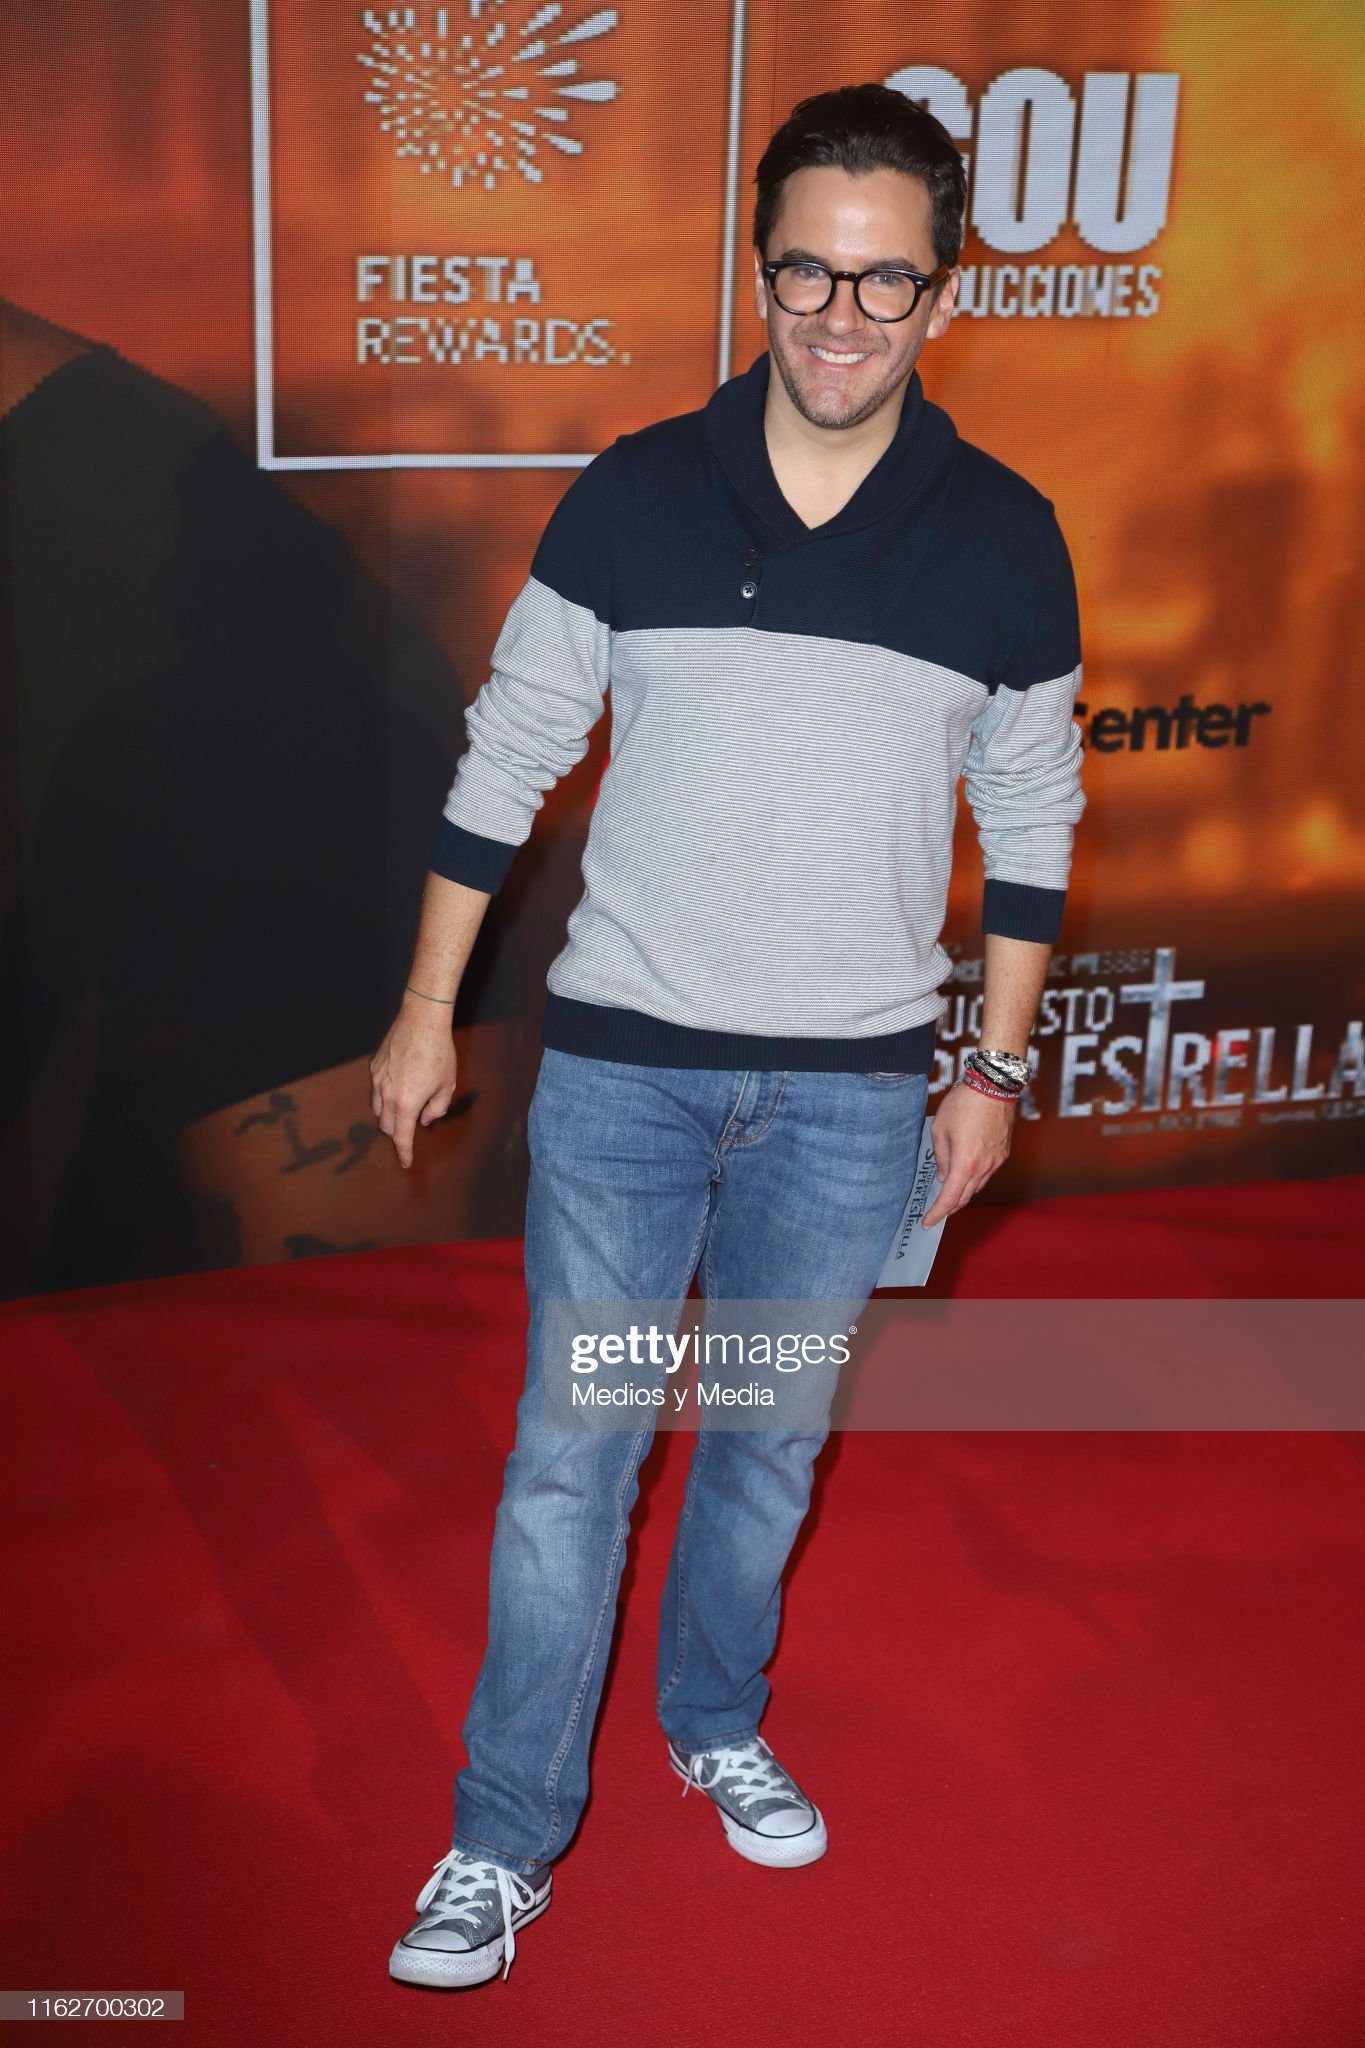 ¿Cuánto mide Mauricio Mancera? - Altura - Real height Mauricio-mancera-poses-for-photos-on-the-red-carpet-for-the-at-1-picture-id1162700302?s=2048x2048